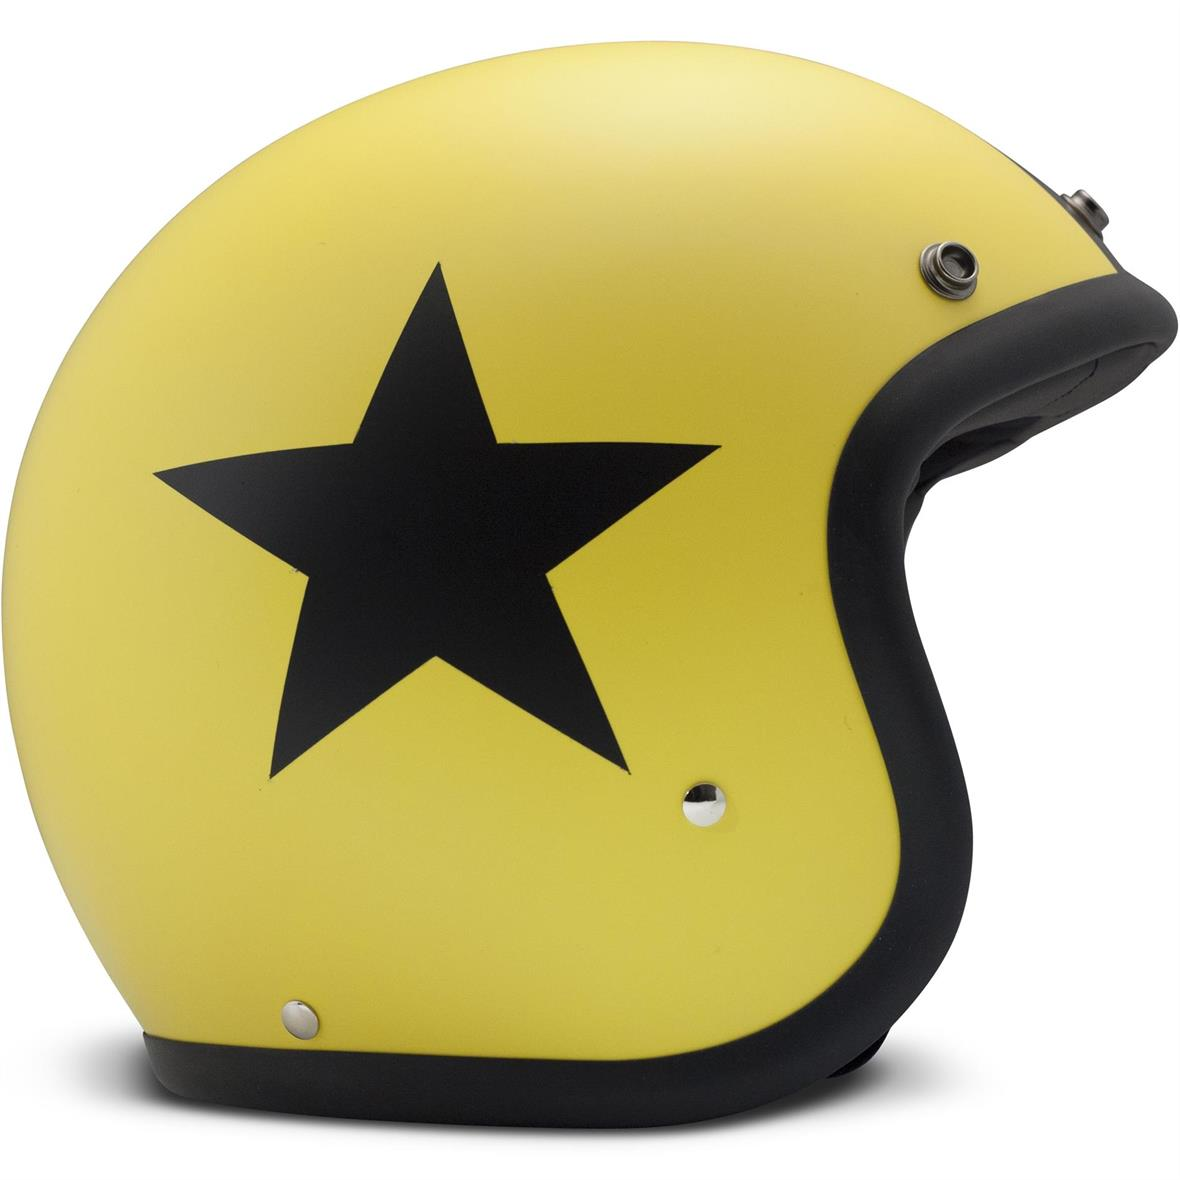 Product Image for 'Helmet DMD Vintage Star YellowTitle'